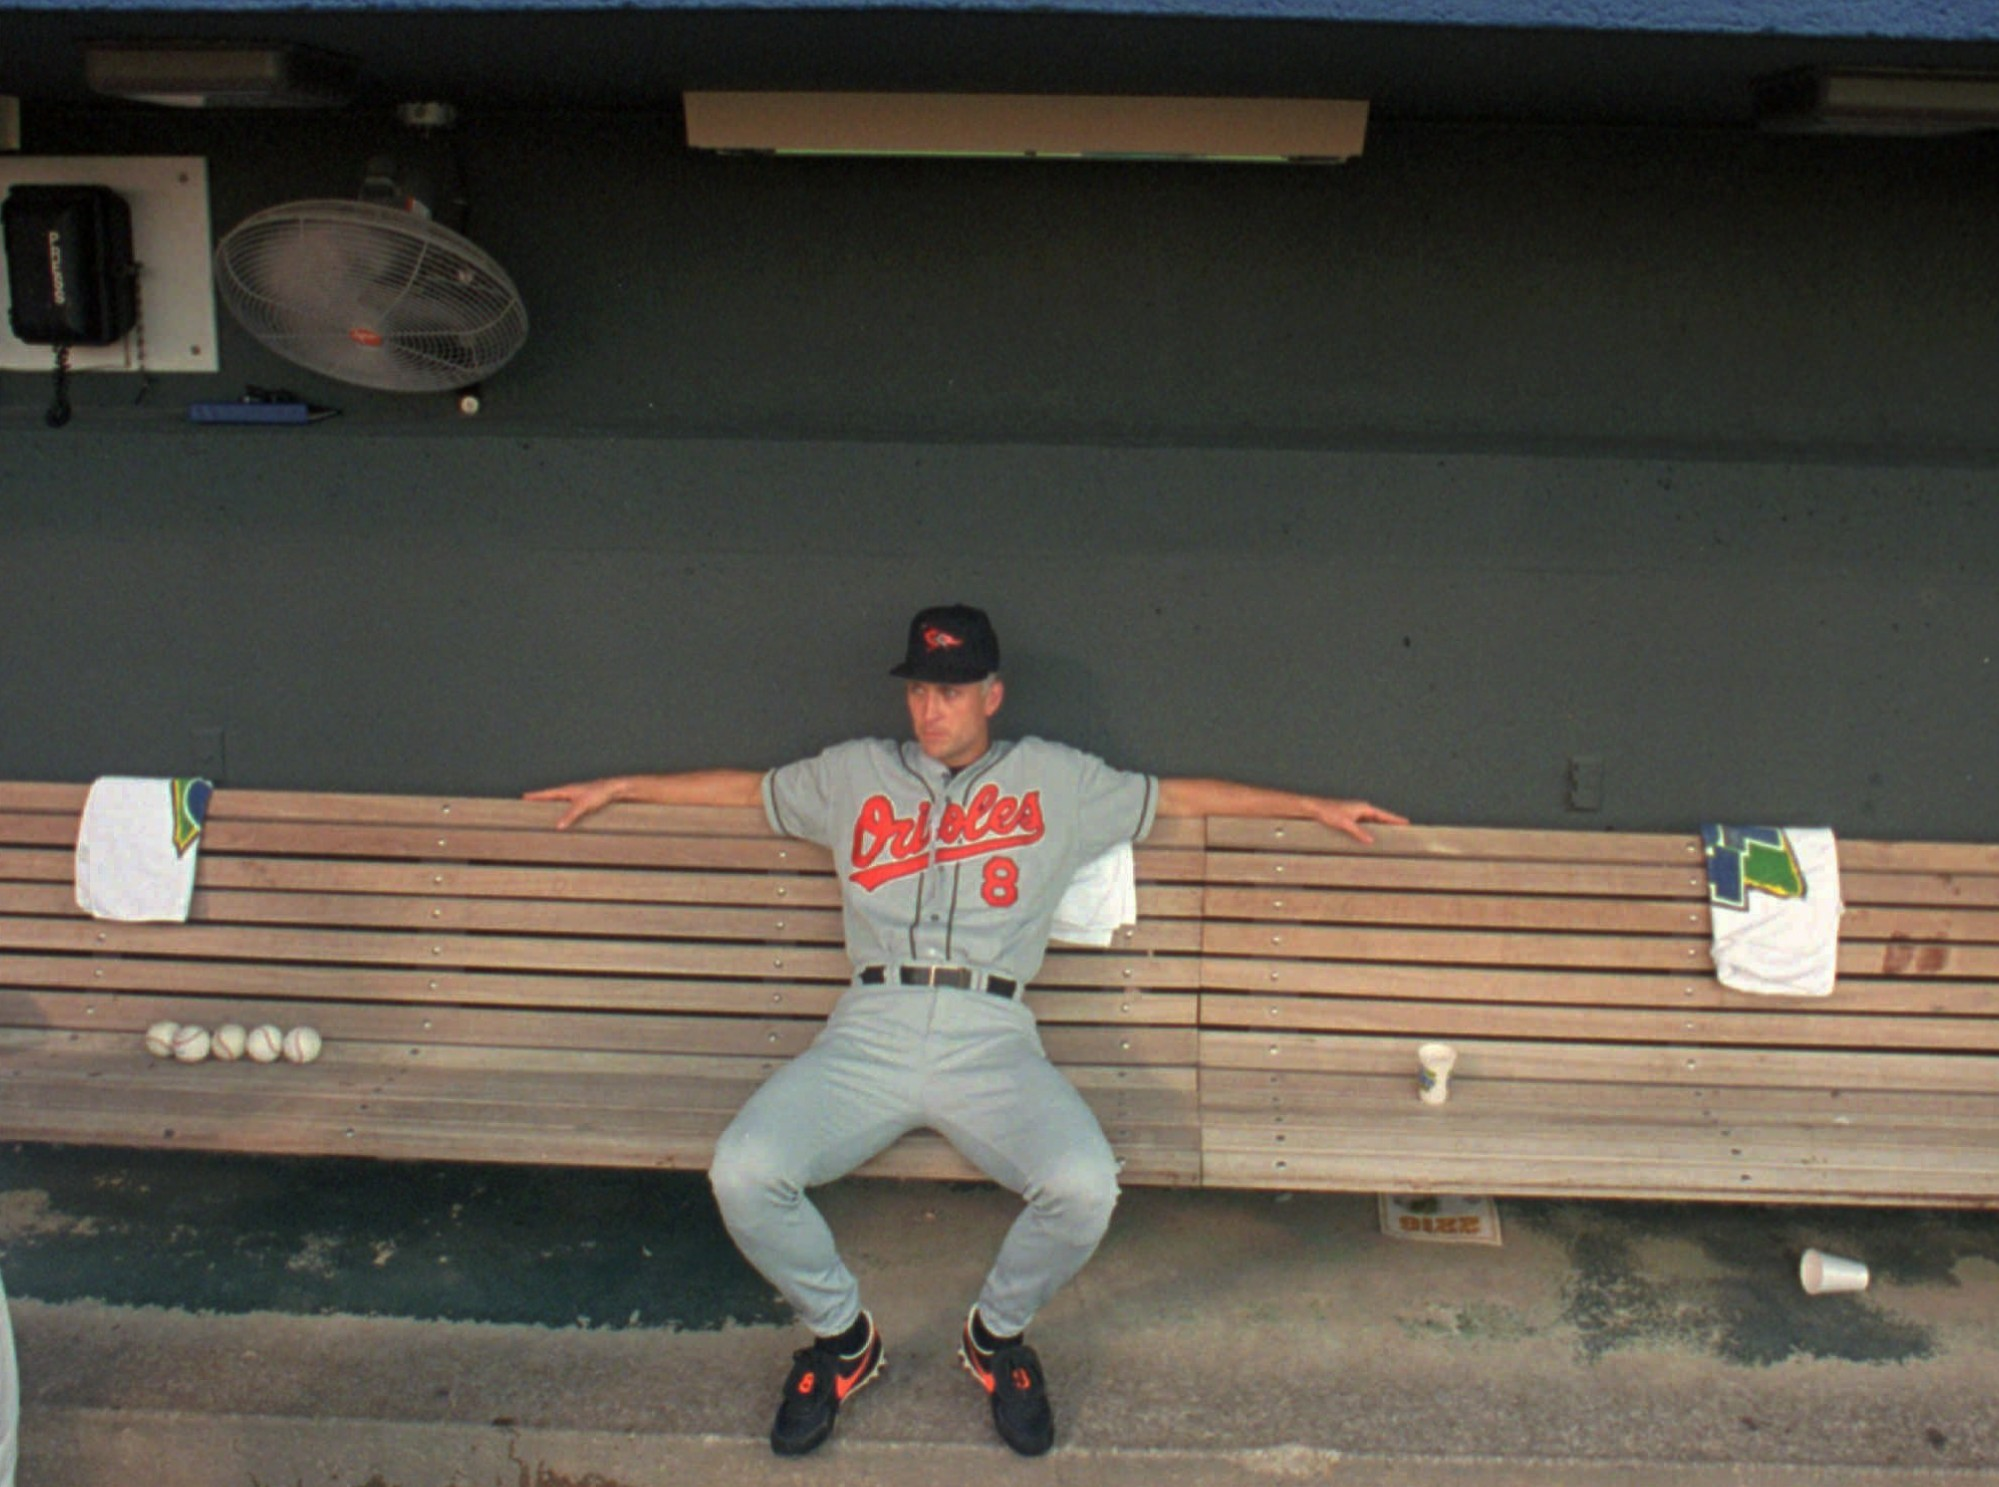 Baltimore Orioles Cal Ripken has the dugout bench to himself before a ceremonial gift exchange at Kauffman Stadium Friday, June 14, 1996, in Kansas City, Mo. Ripken will break the world baseball record when he plays his 2,216th consecutive game. (AP Photo/Cliff Schiappa)